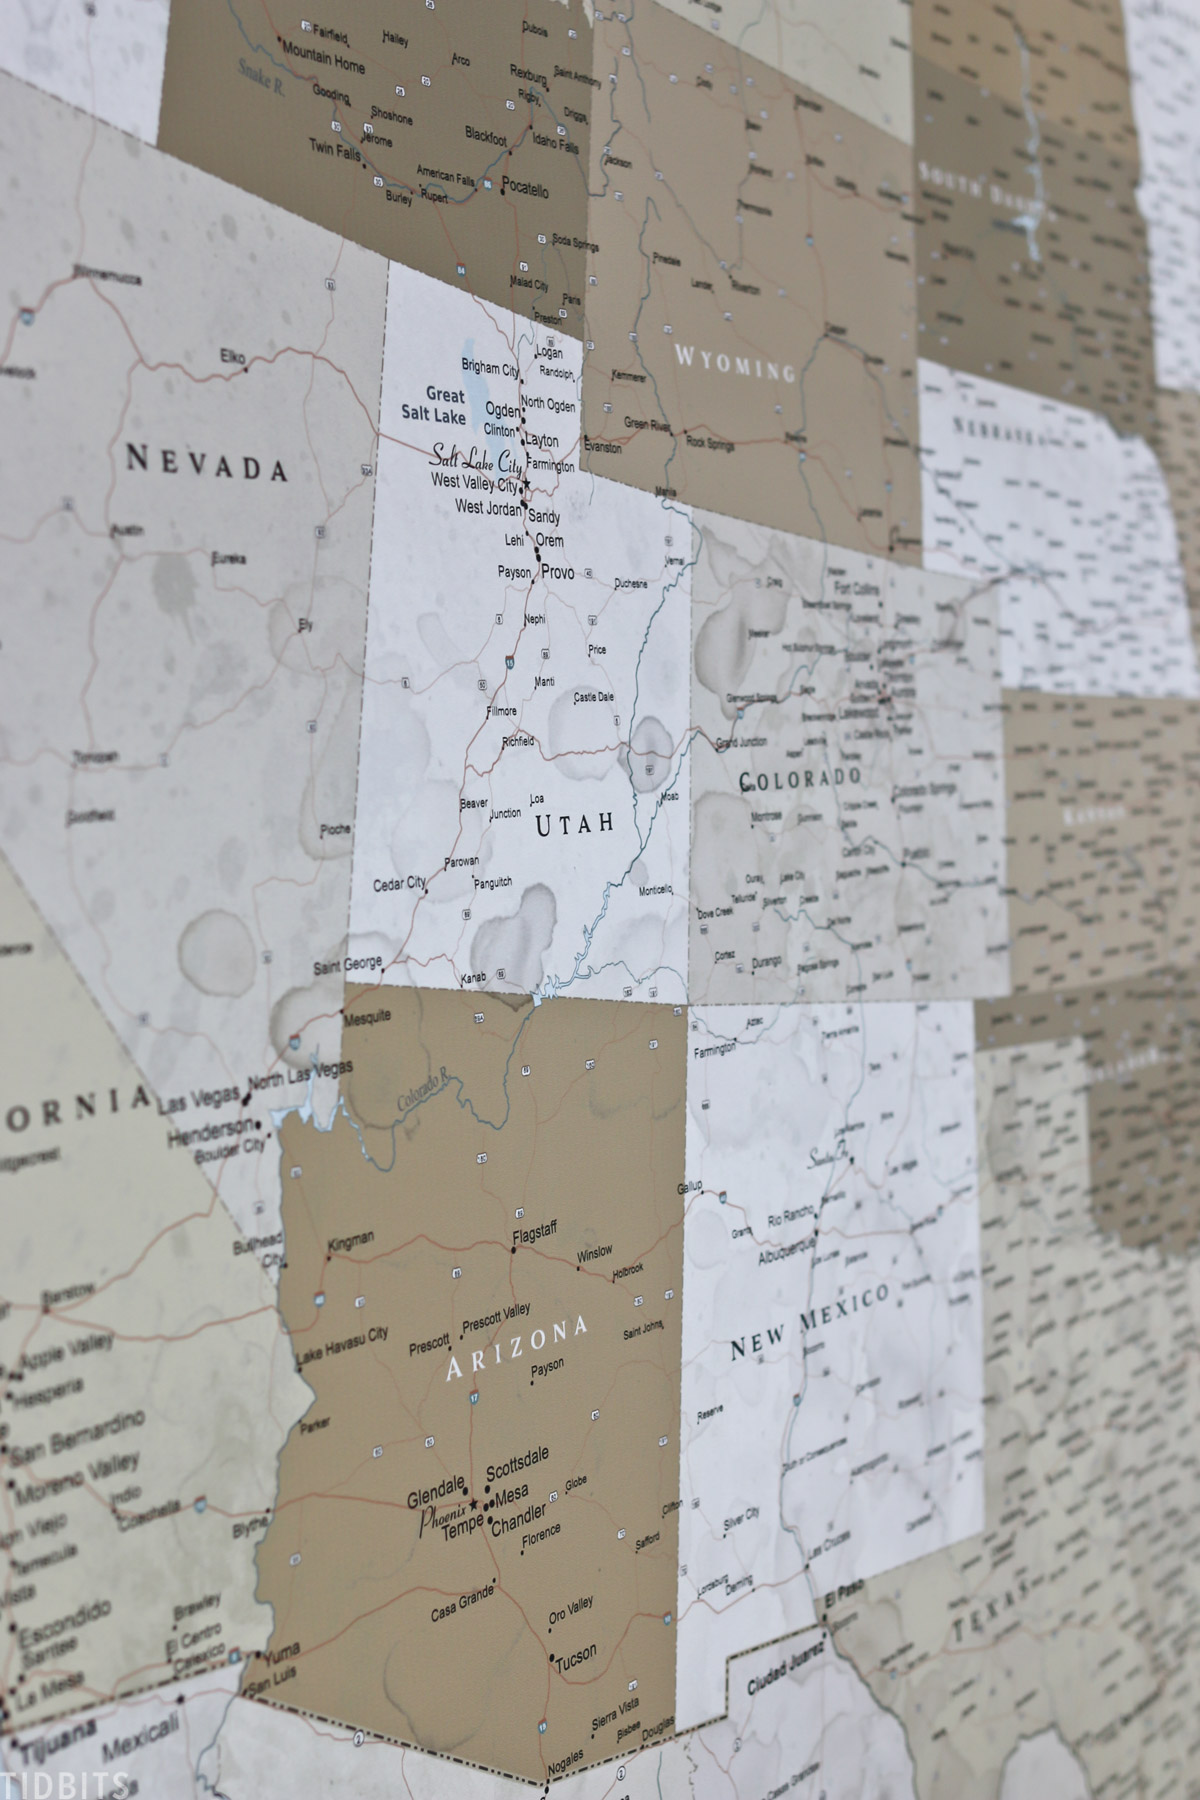 United States map hanging on wall showing details of Arizona, Utah, Colorado, and New Mexico